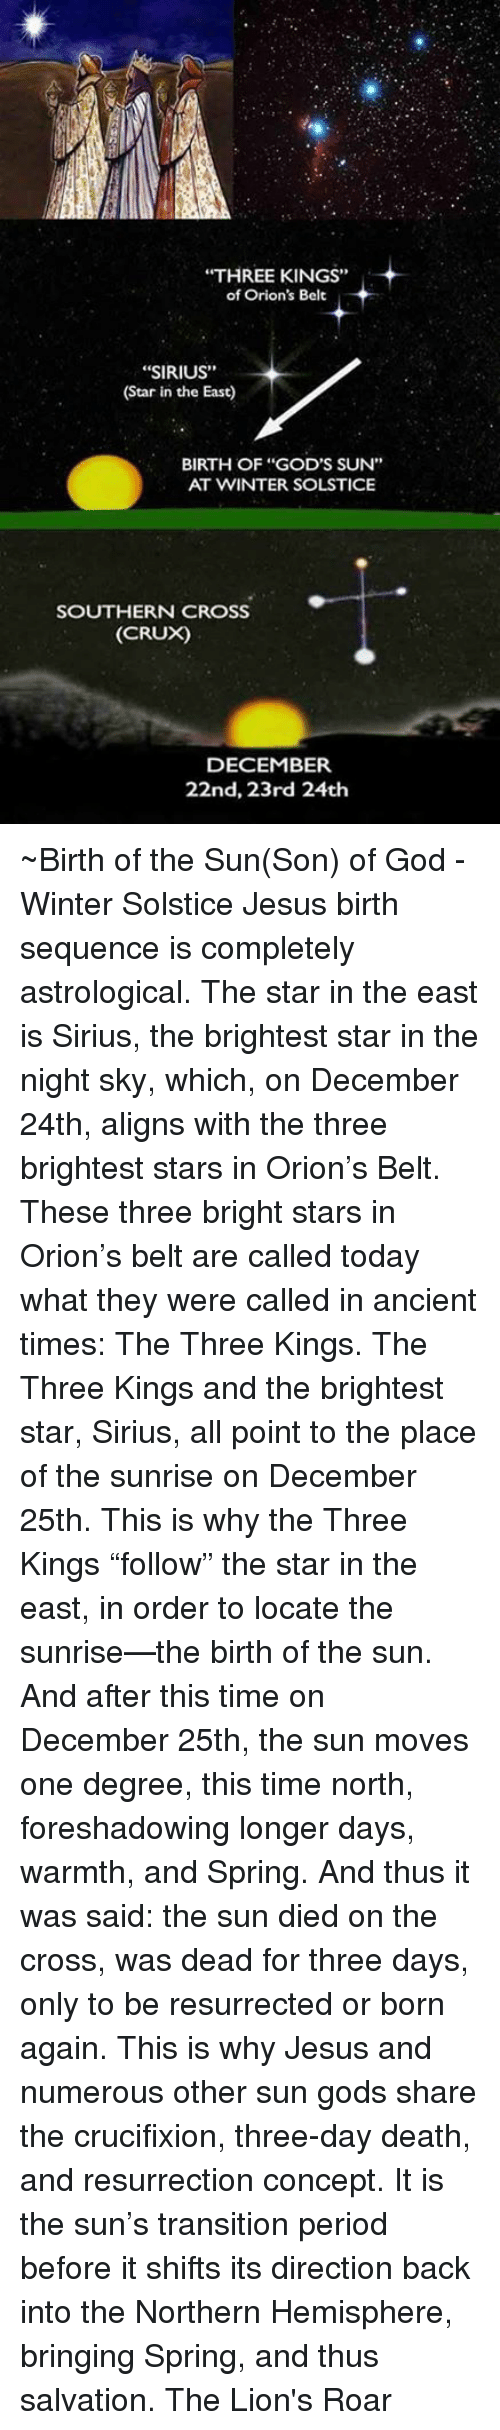 "Memes, Period, and Astrology: ""THREE KINGS""  of Orion's Belt  ""SIRIUS""  (Star in the East)  BIRTH OF ""GOD'S SUN""  AT WINTER SOLSTICE  SOUTHERN CROSS  (CRUX)  DECEMBER  22nd, 23rd 24th ~Birth of the Sun(Son) of God - Winter Solstice  Jesus birth sequence is completely astrological. The star in the east is Sirius, the brightest star in the night sky, which, on December 24th, aligns with the three brightest stars in Orion's Belt. These three bright stars in Orion's belt are called today what they were called in ancient times: The Three Kings. The Three Kings and the brightest star, Sirius, all point to the place of the sunrise on December 25th. This is why the Three Kings ""follow"" the star in the east, in order to locate the sunrise—the birth of the sun. And after this time on December 25th, the sun moves one degree, this time north, foreshadowing longer days, warmth, and Spring. And thus it was said: the sun died on the cross, was dead for three days, only to be resurrected or born again. This is why Jesus and numerous other sun gods share the crucifixion, three-day death, and resurrection concept. It is the sun's transition period before it shifts its direction back into the Northern Hemisphere, bringing Spring, and thus salvation.  The Lion's Roar"